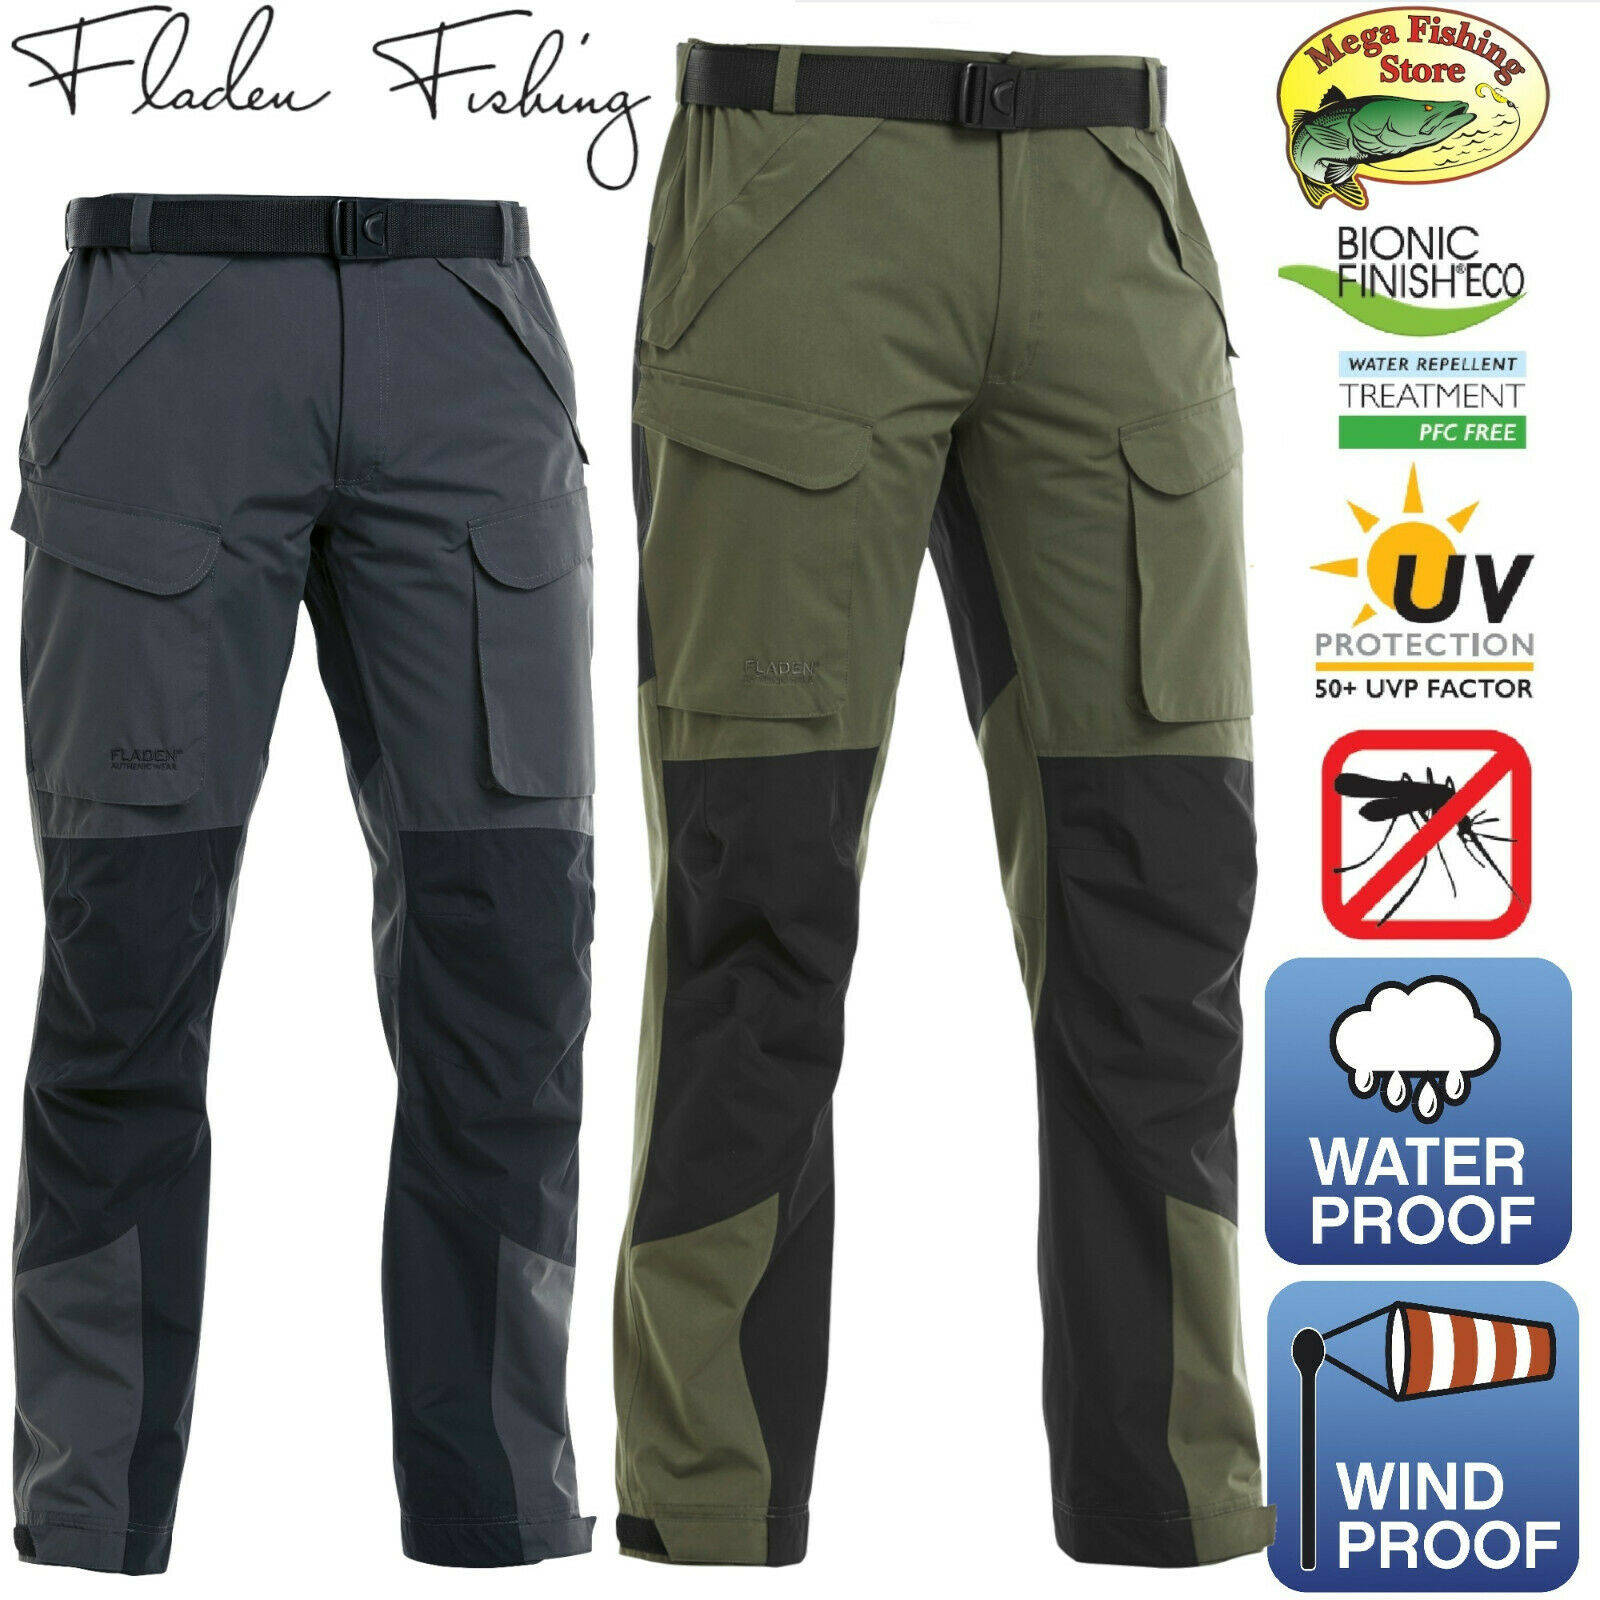 FLADEN Authentic 2.0 Allwetter Outdoor Hose - Jagd & Angelhose - Wasserdicht